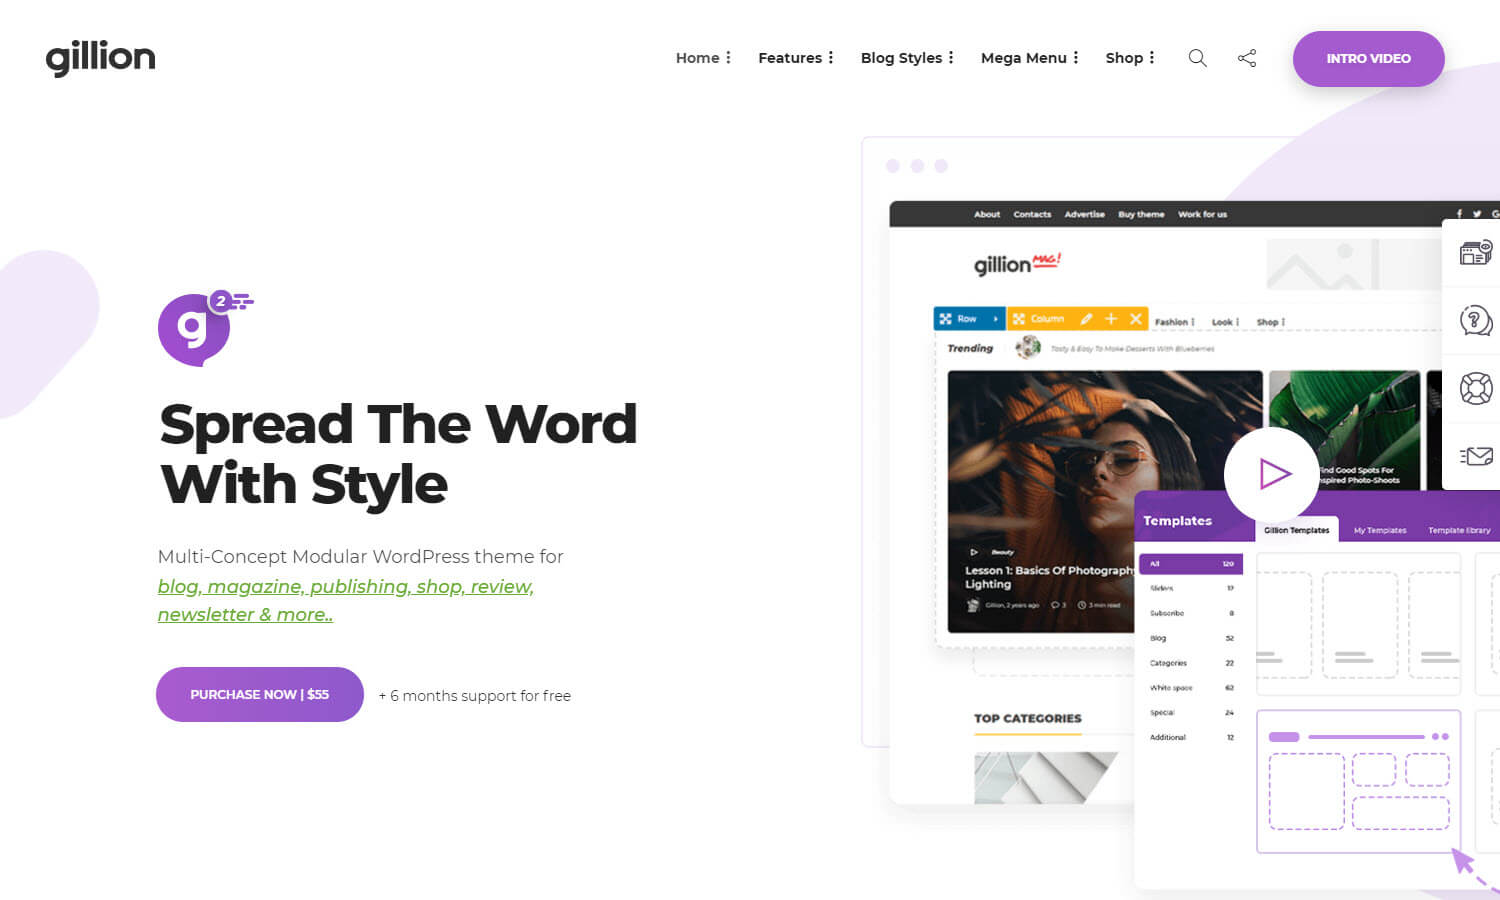 Gillion screenshot